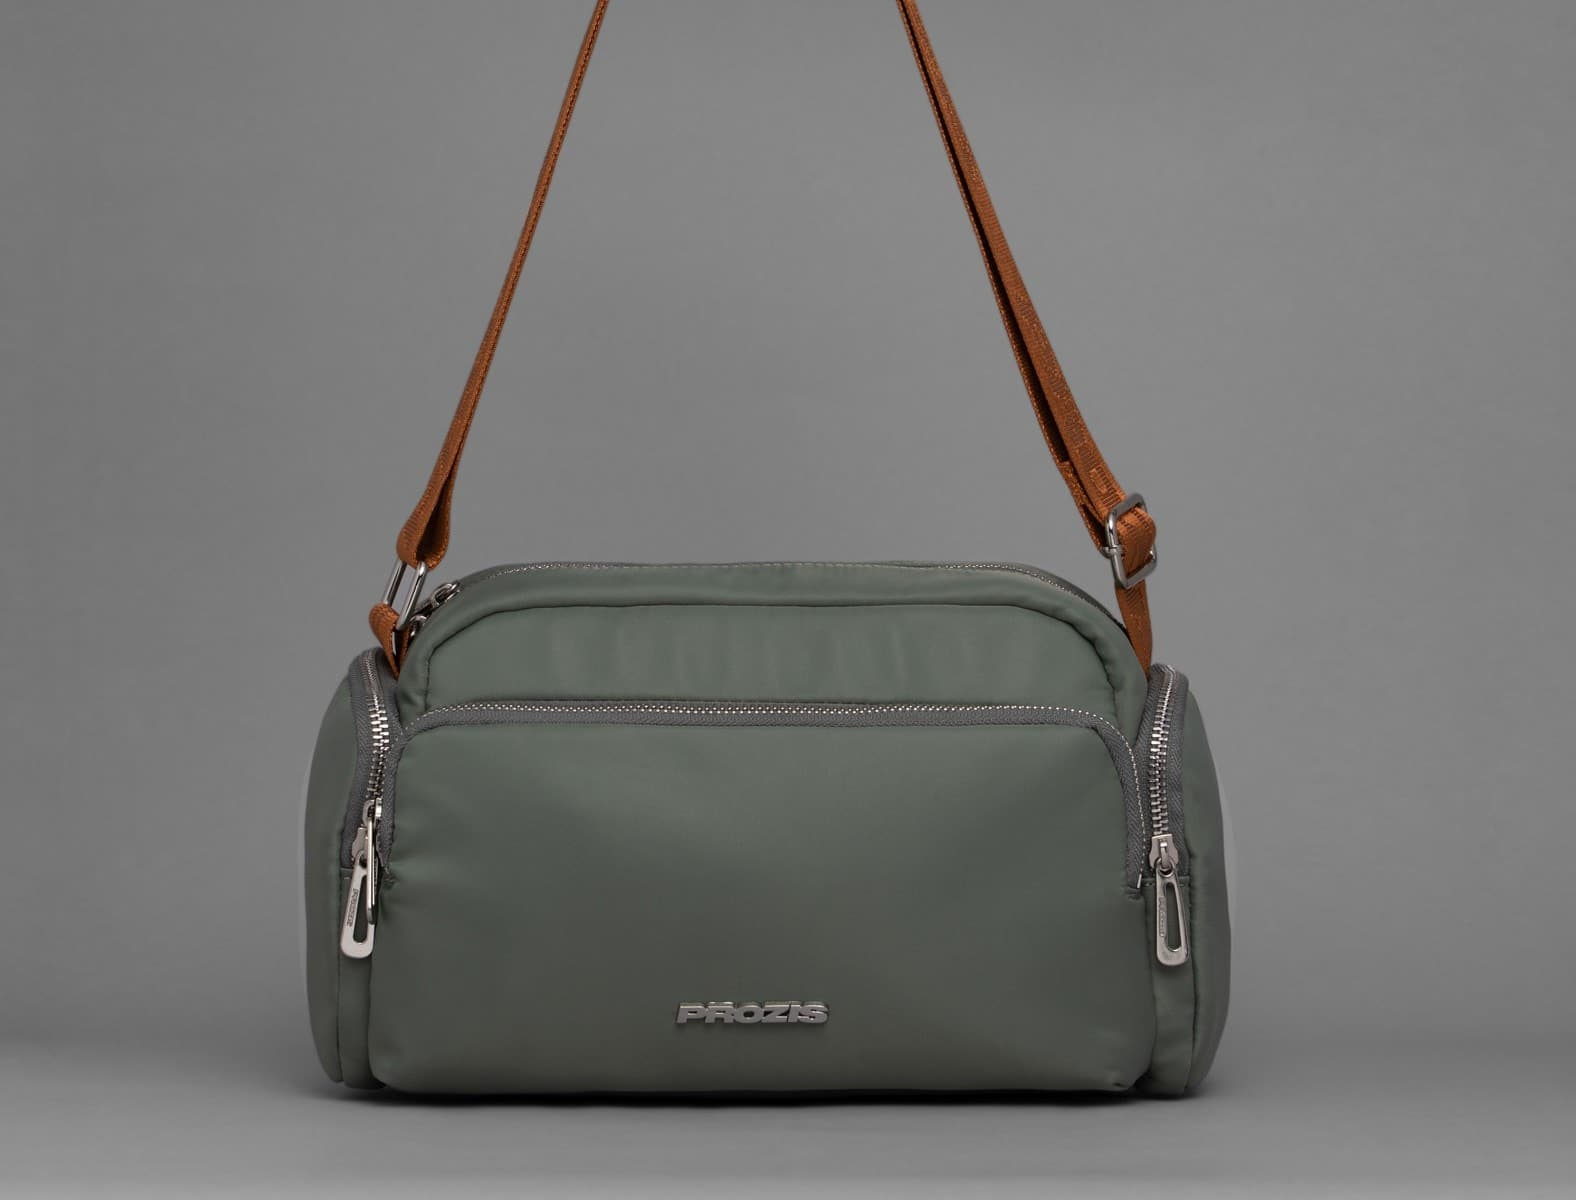 Prozis Shoulder Bag